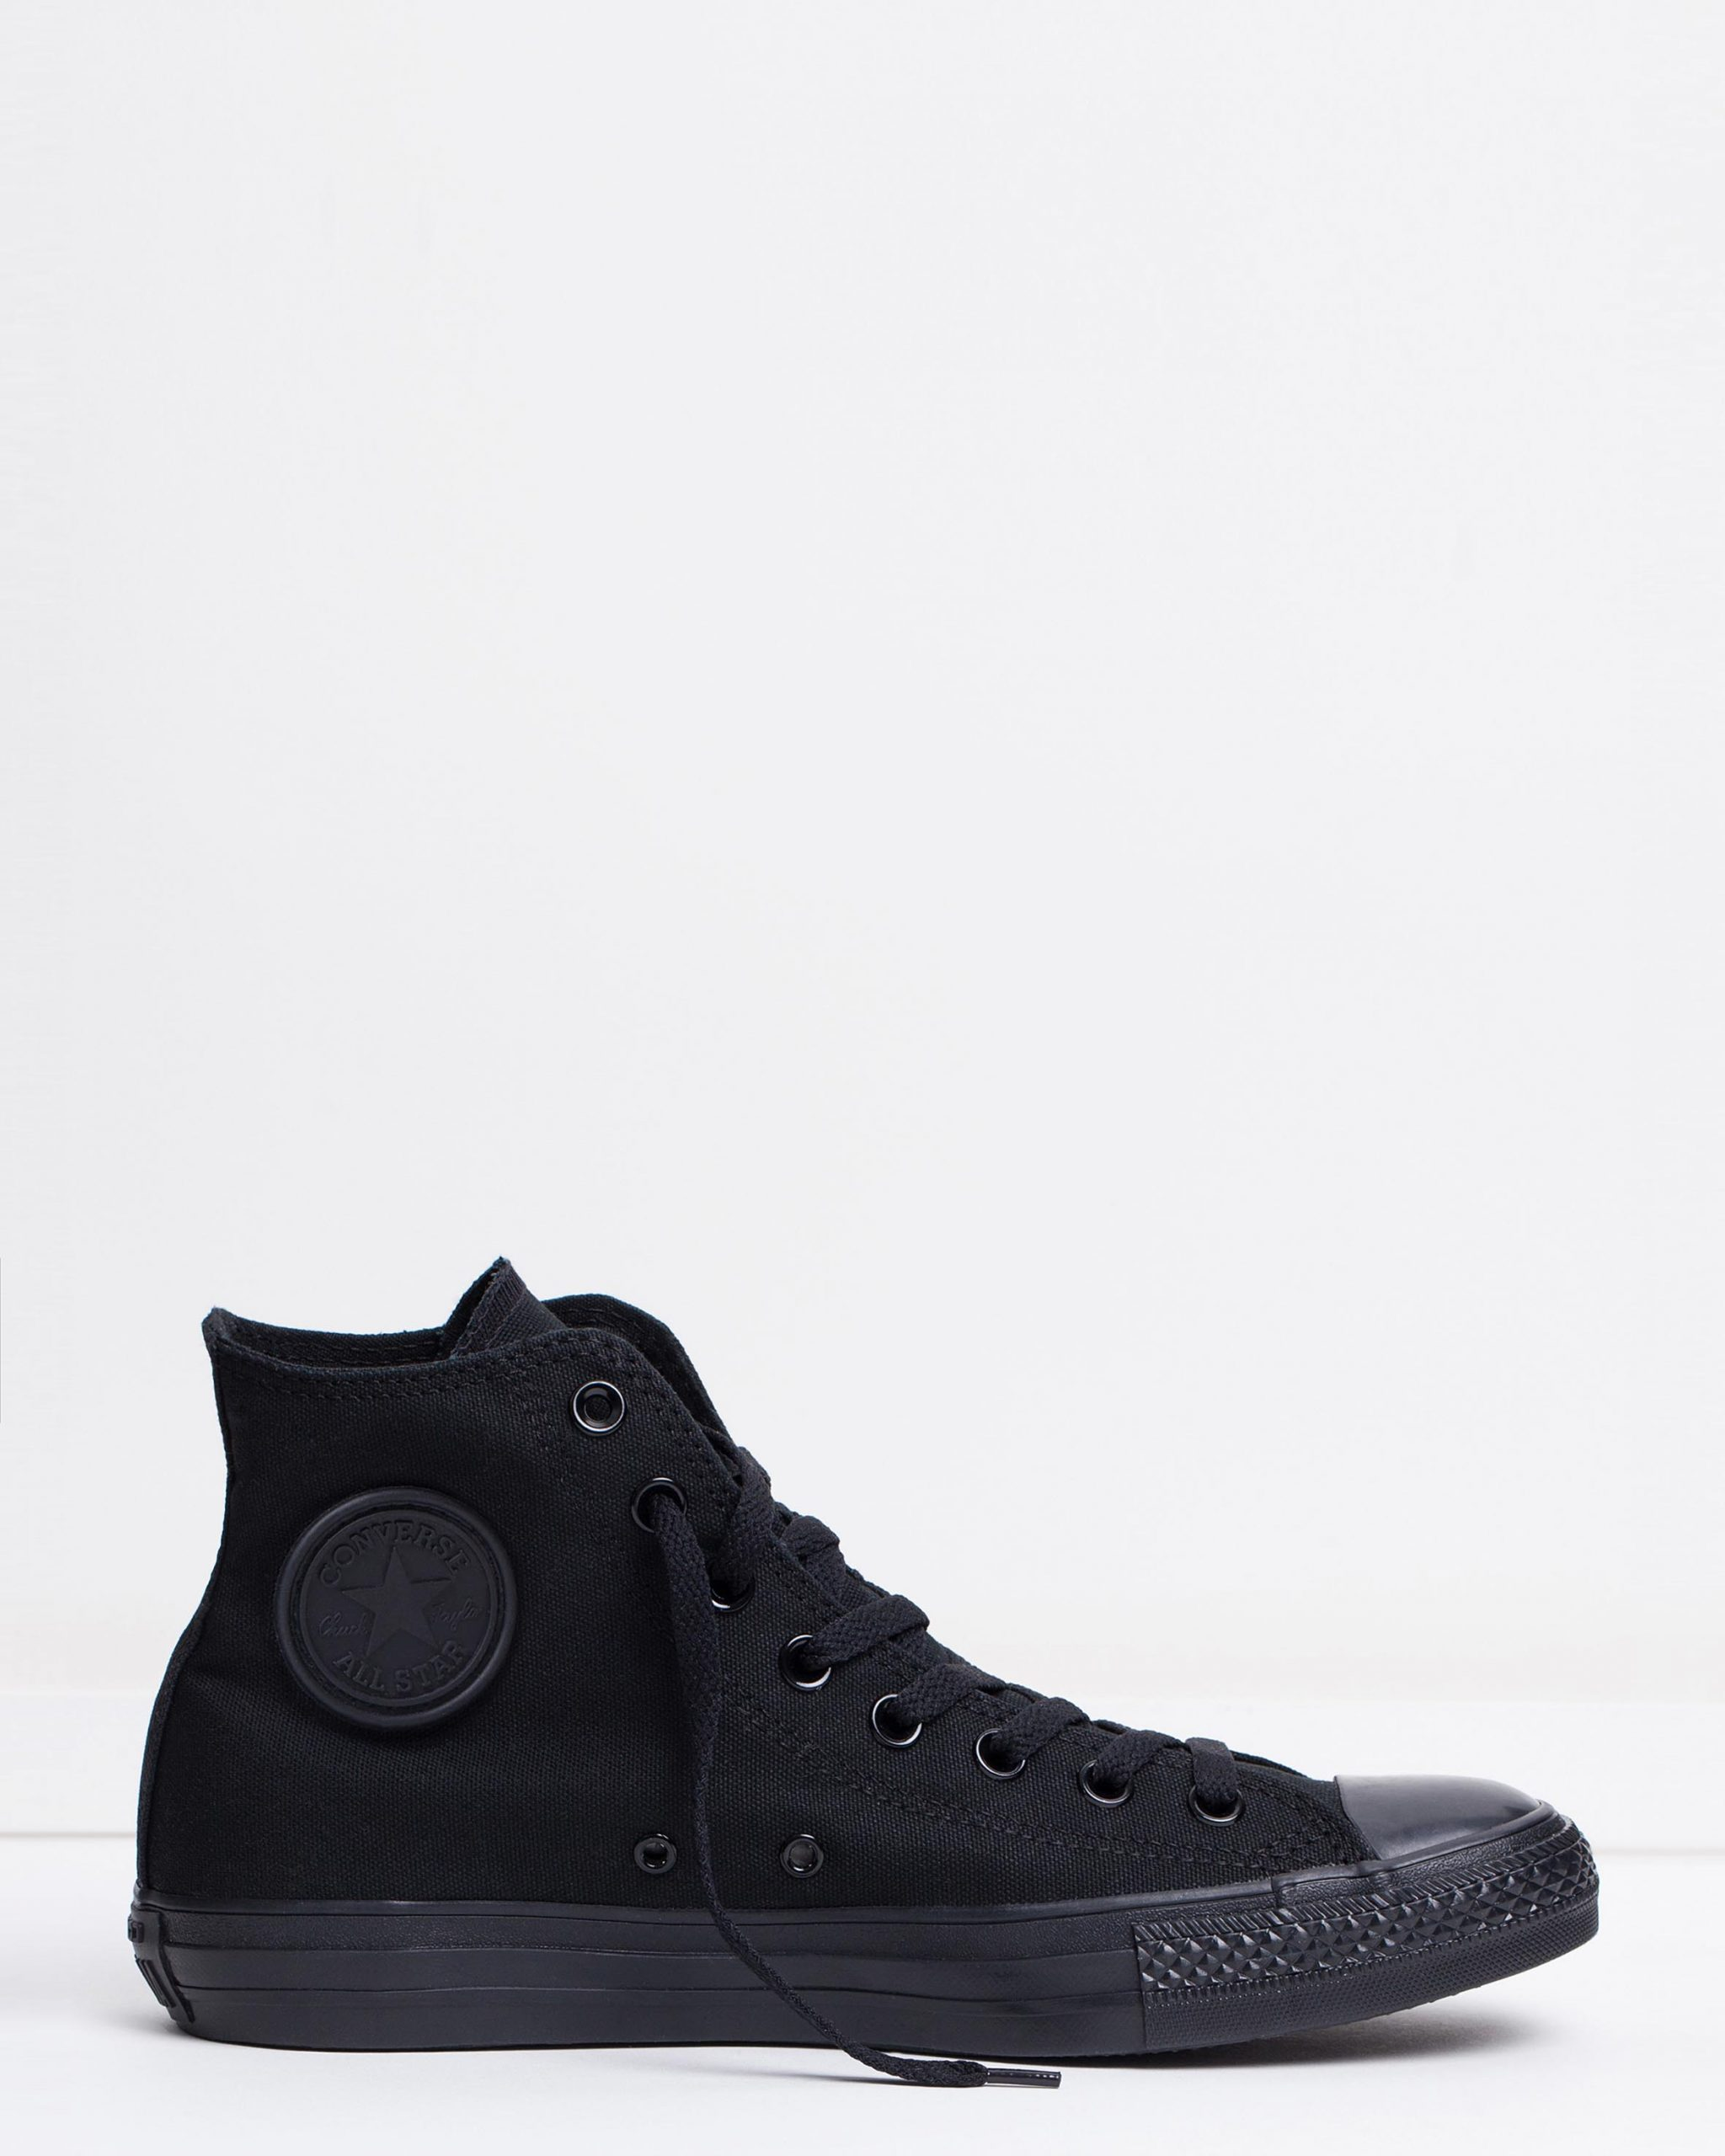 Converse Chuck Taylor All Star Hi Womens Black Monochrome